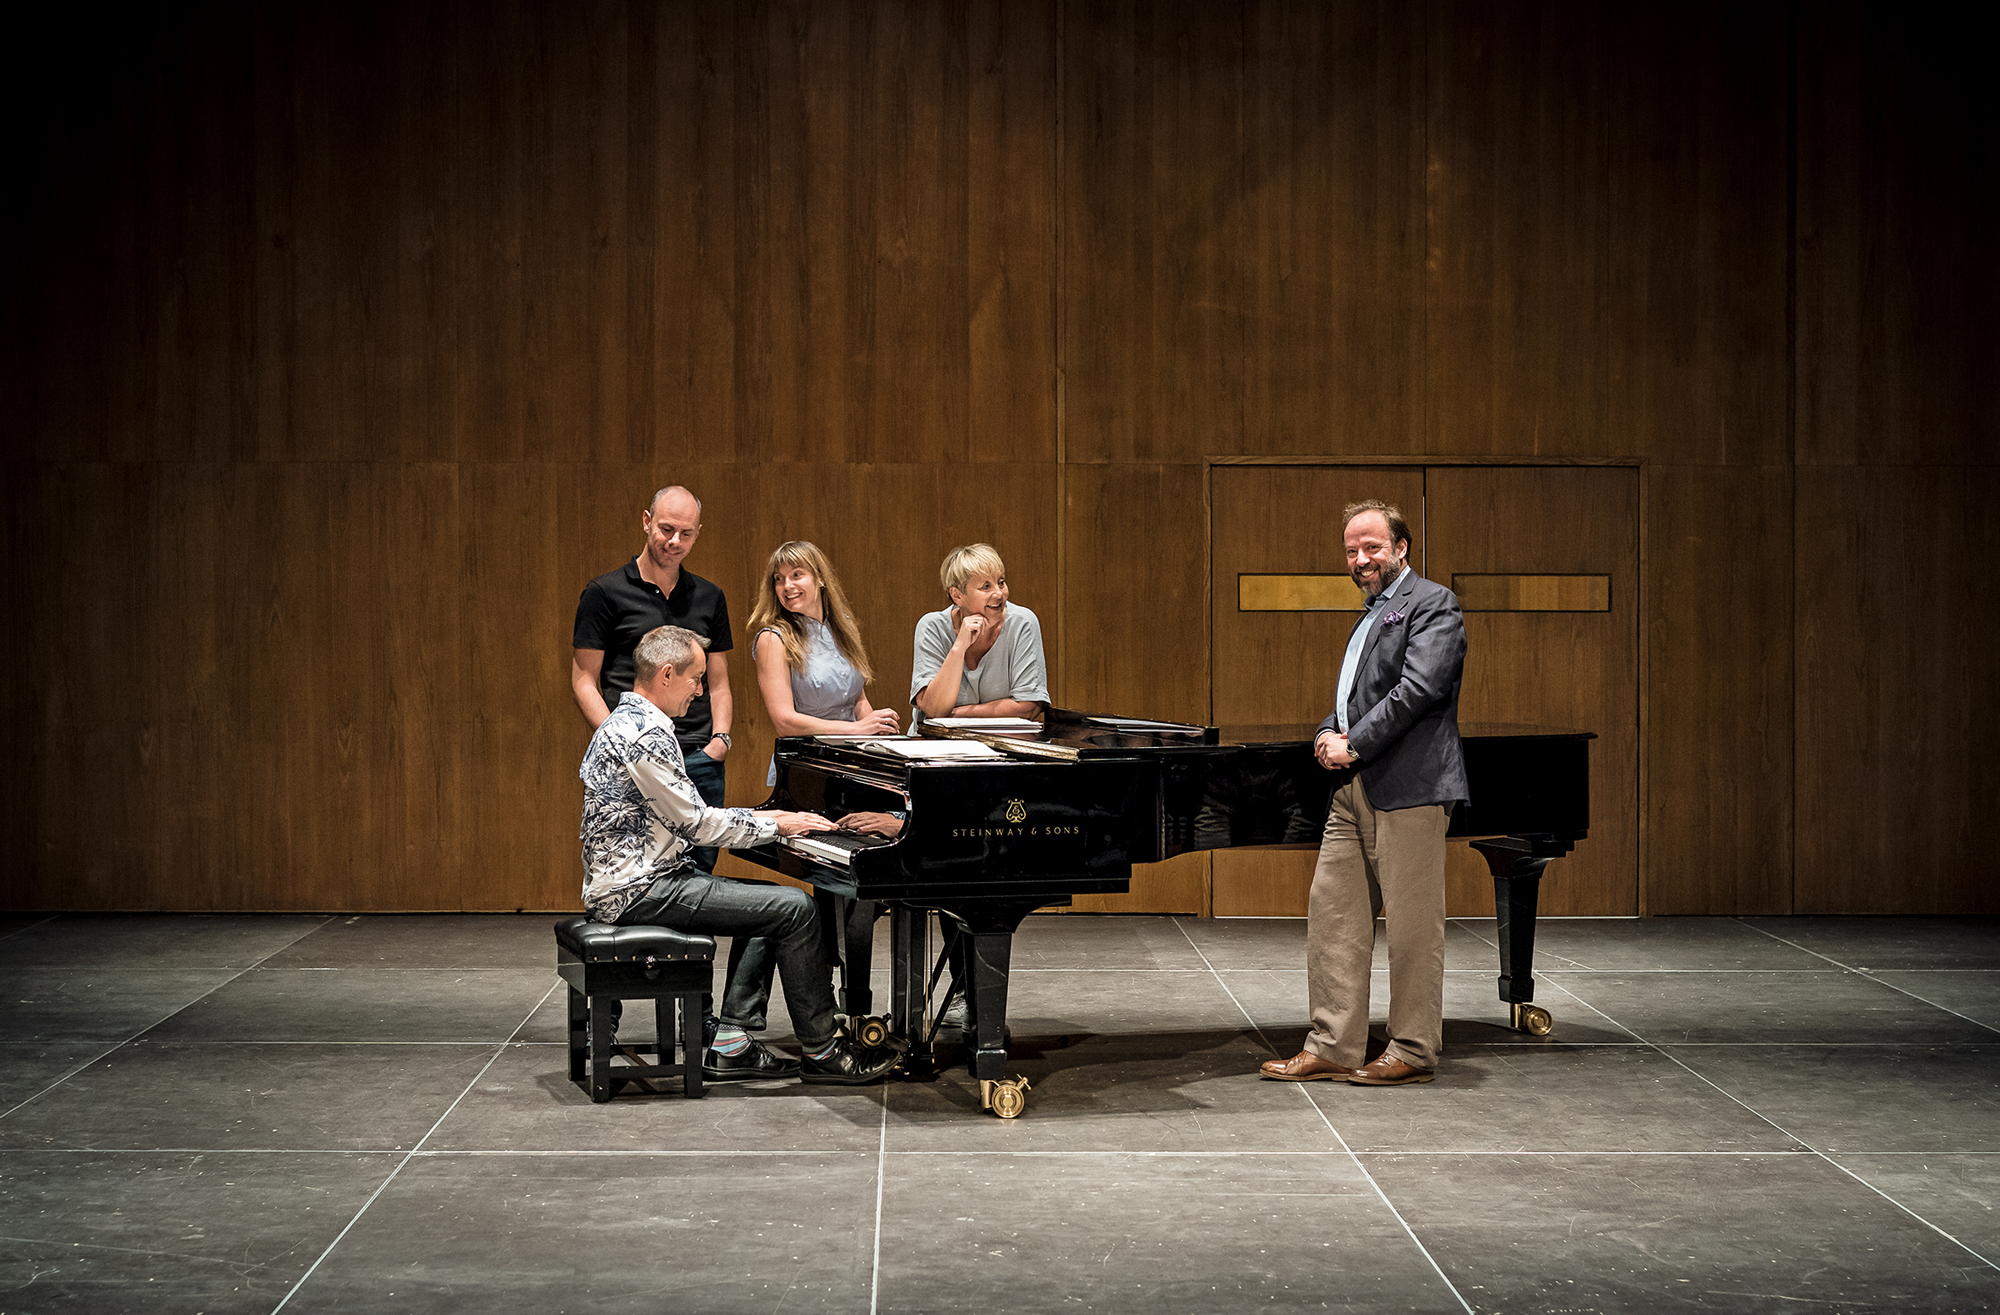 The 21st century patrons commissioning classical music